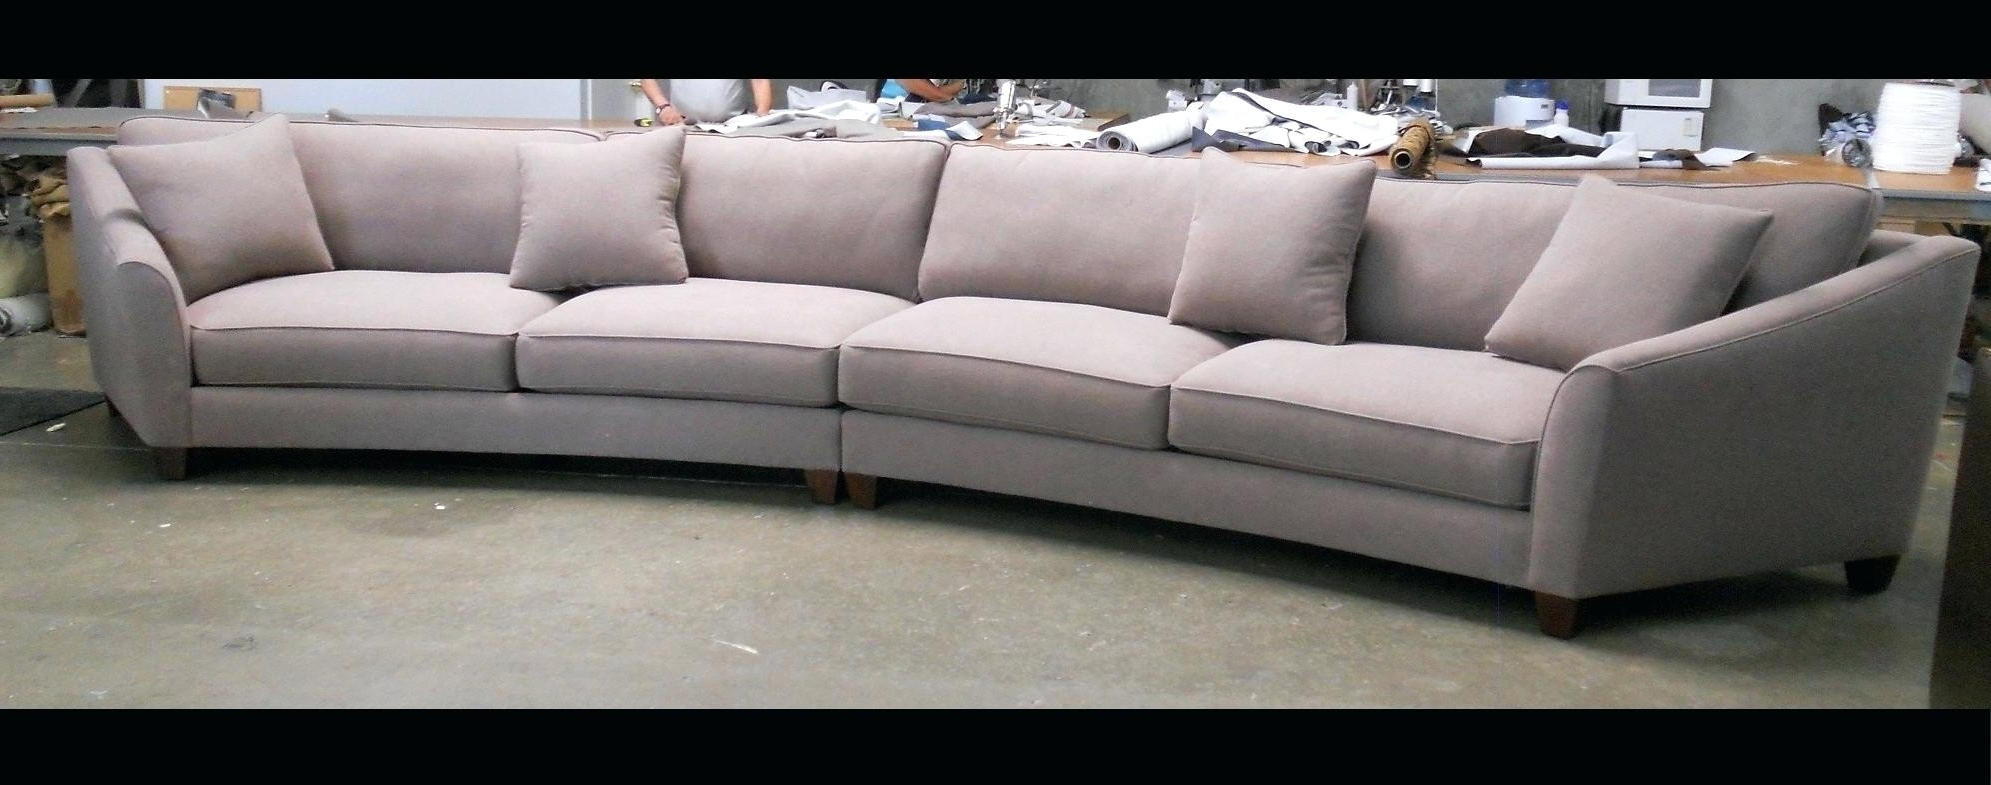 Well Known Curved Sectional Sofas With Recliner With Round Sectional Couch – Ncgeconference (View 13 of 20)